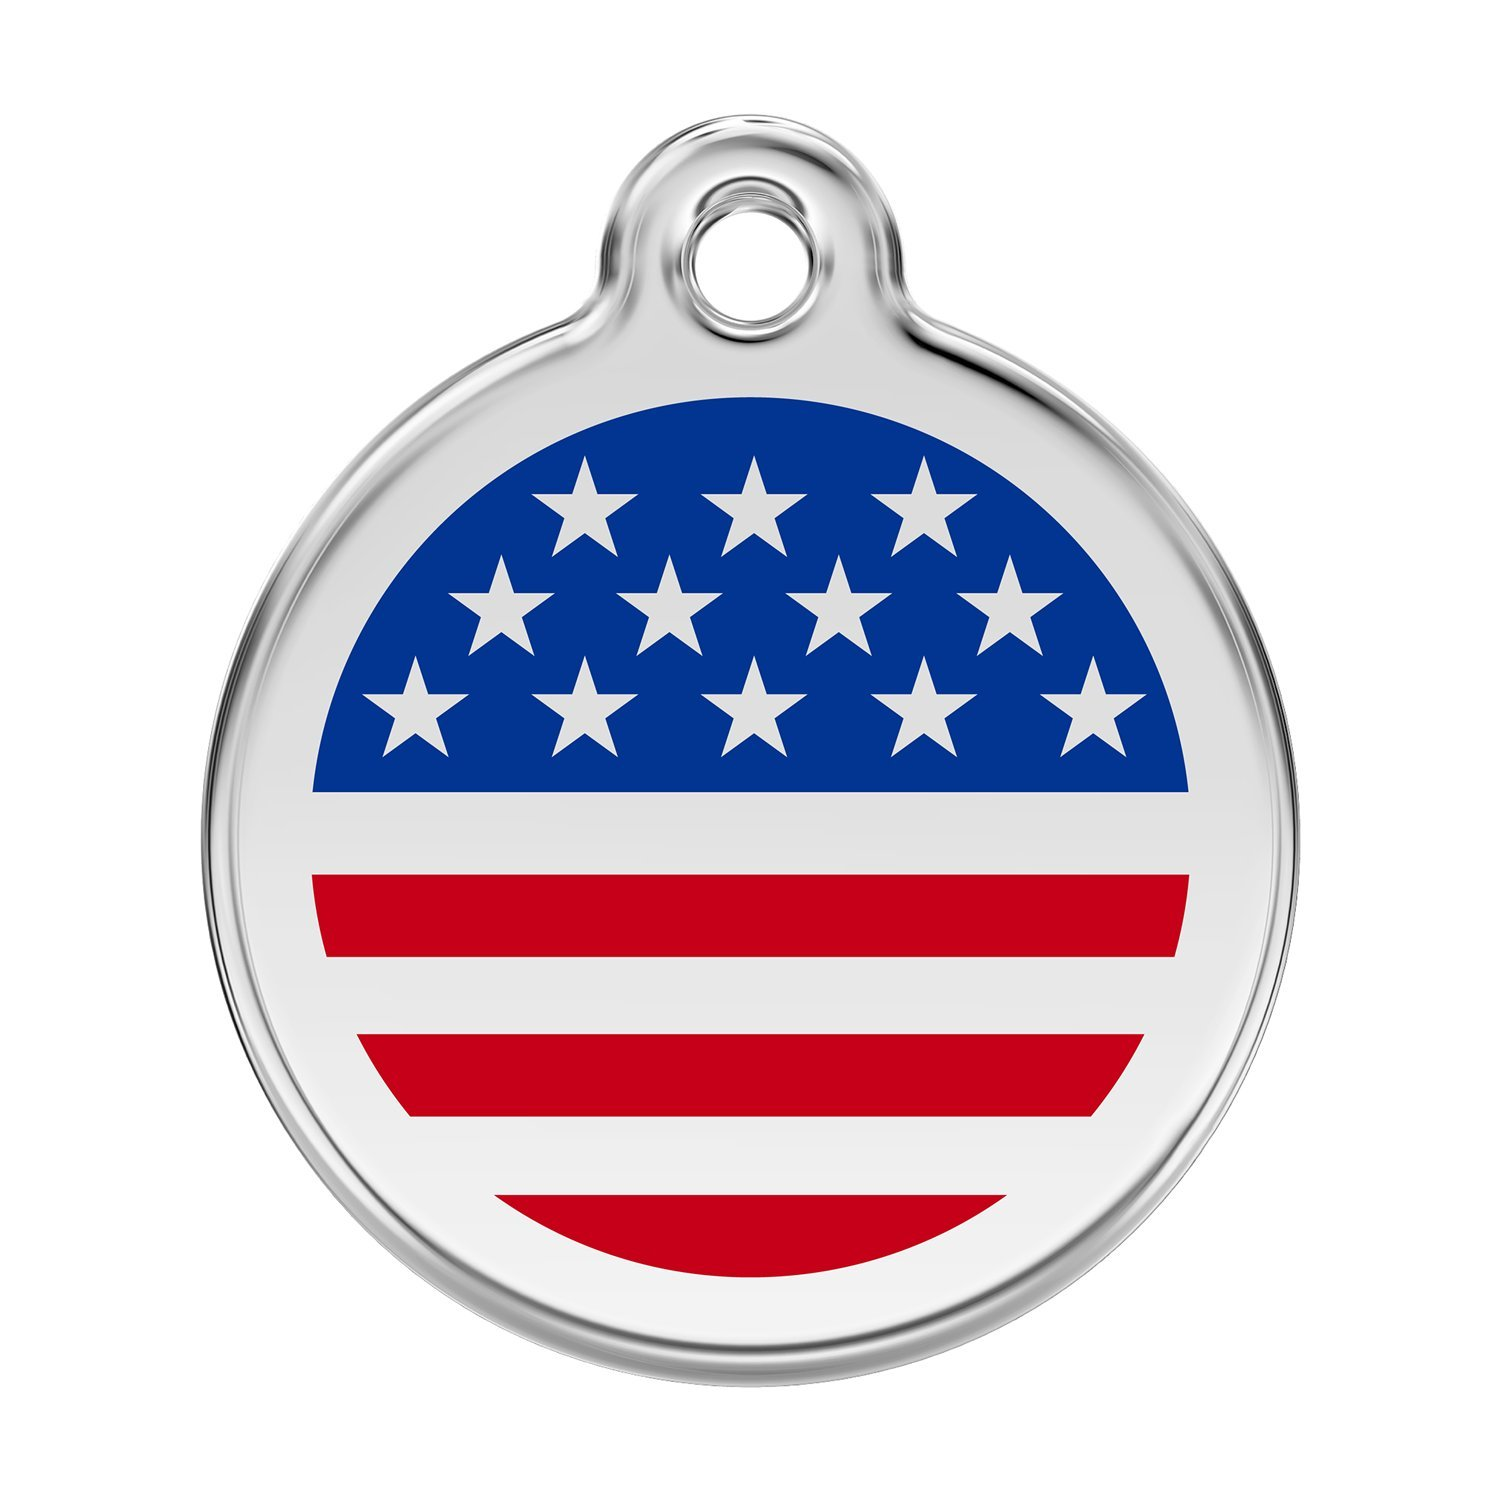 Red Dingo Custom Engraved Stainless Steel and Enamel Dog ID Tag - Stars & Stripes футболка lasting dingo 6262 xl мужская